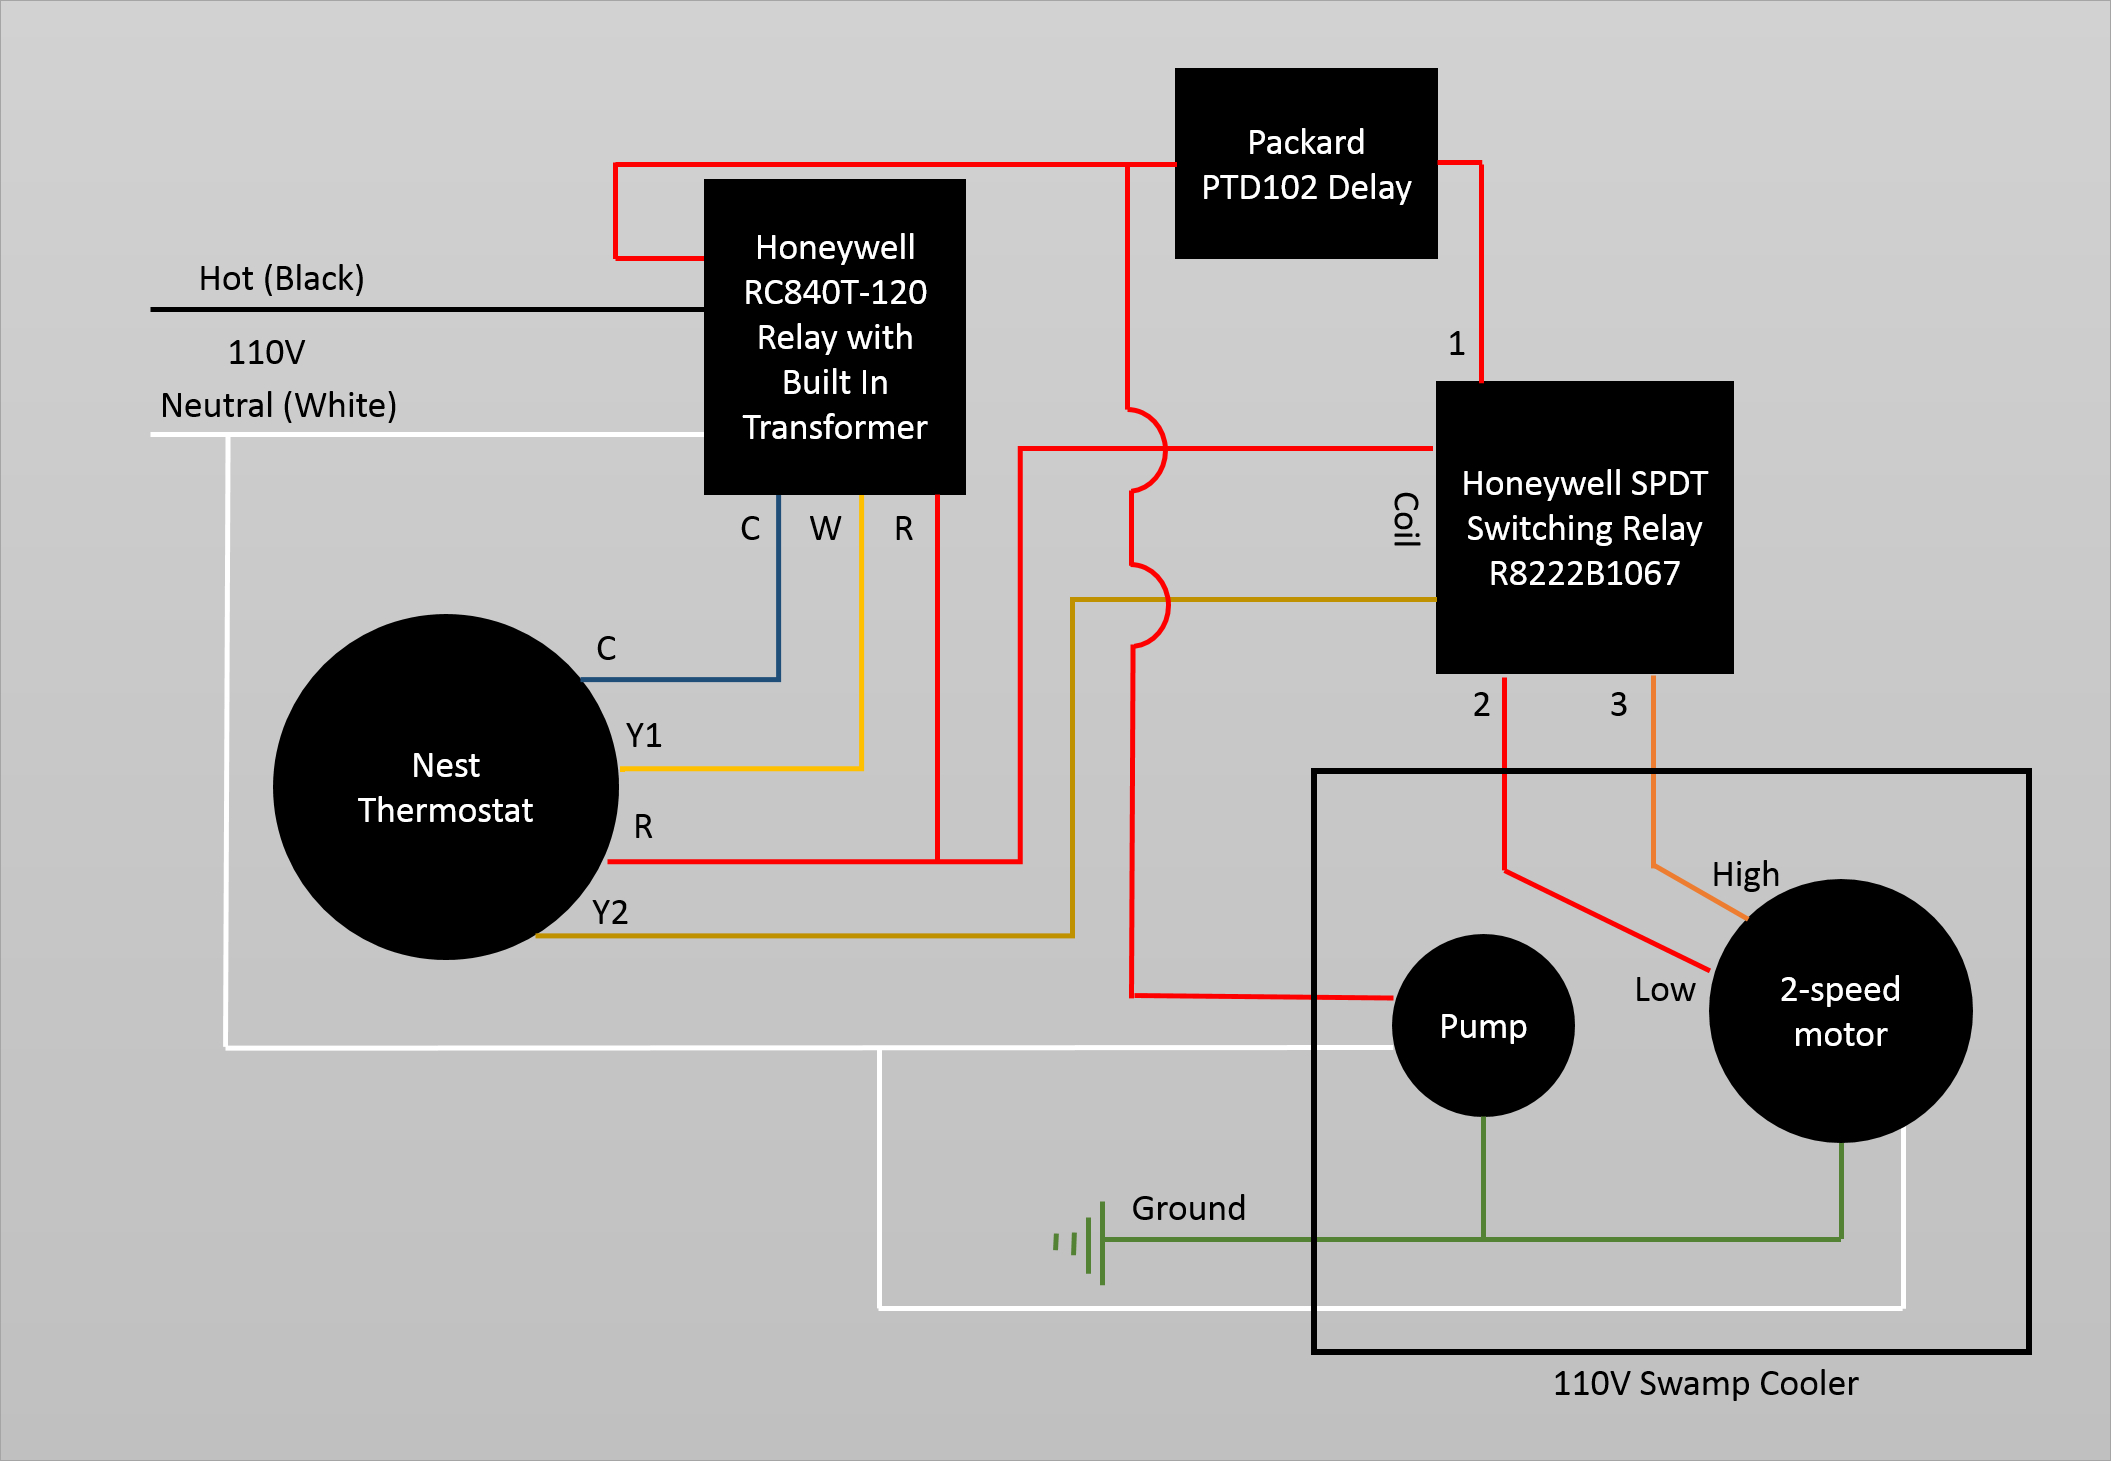 Wiring - Controlling 110V Swamp Cooler Using Nest Thermostat - Home - Millivolt Heater Wiring Diagram For Nest Thermostat